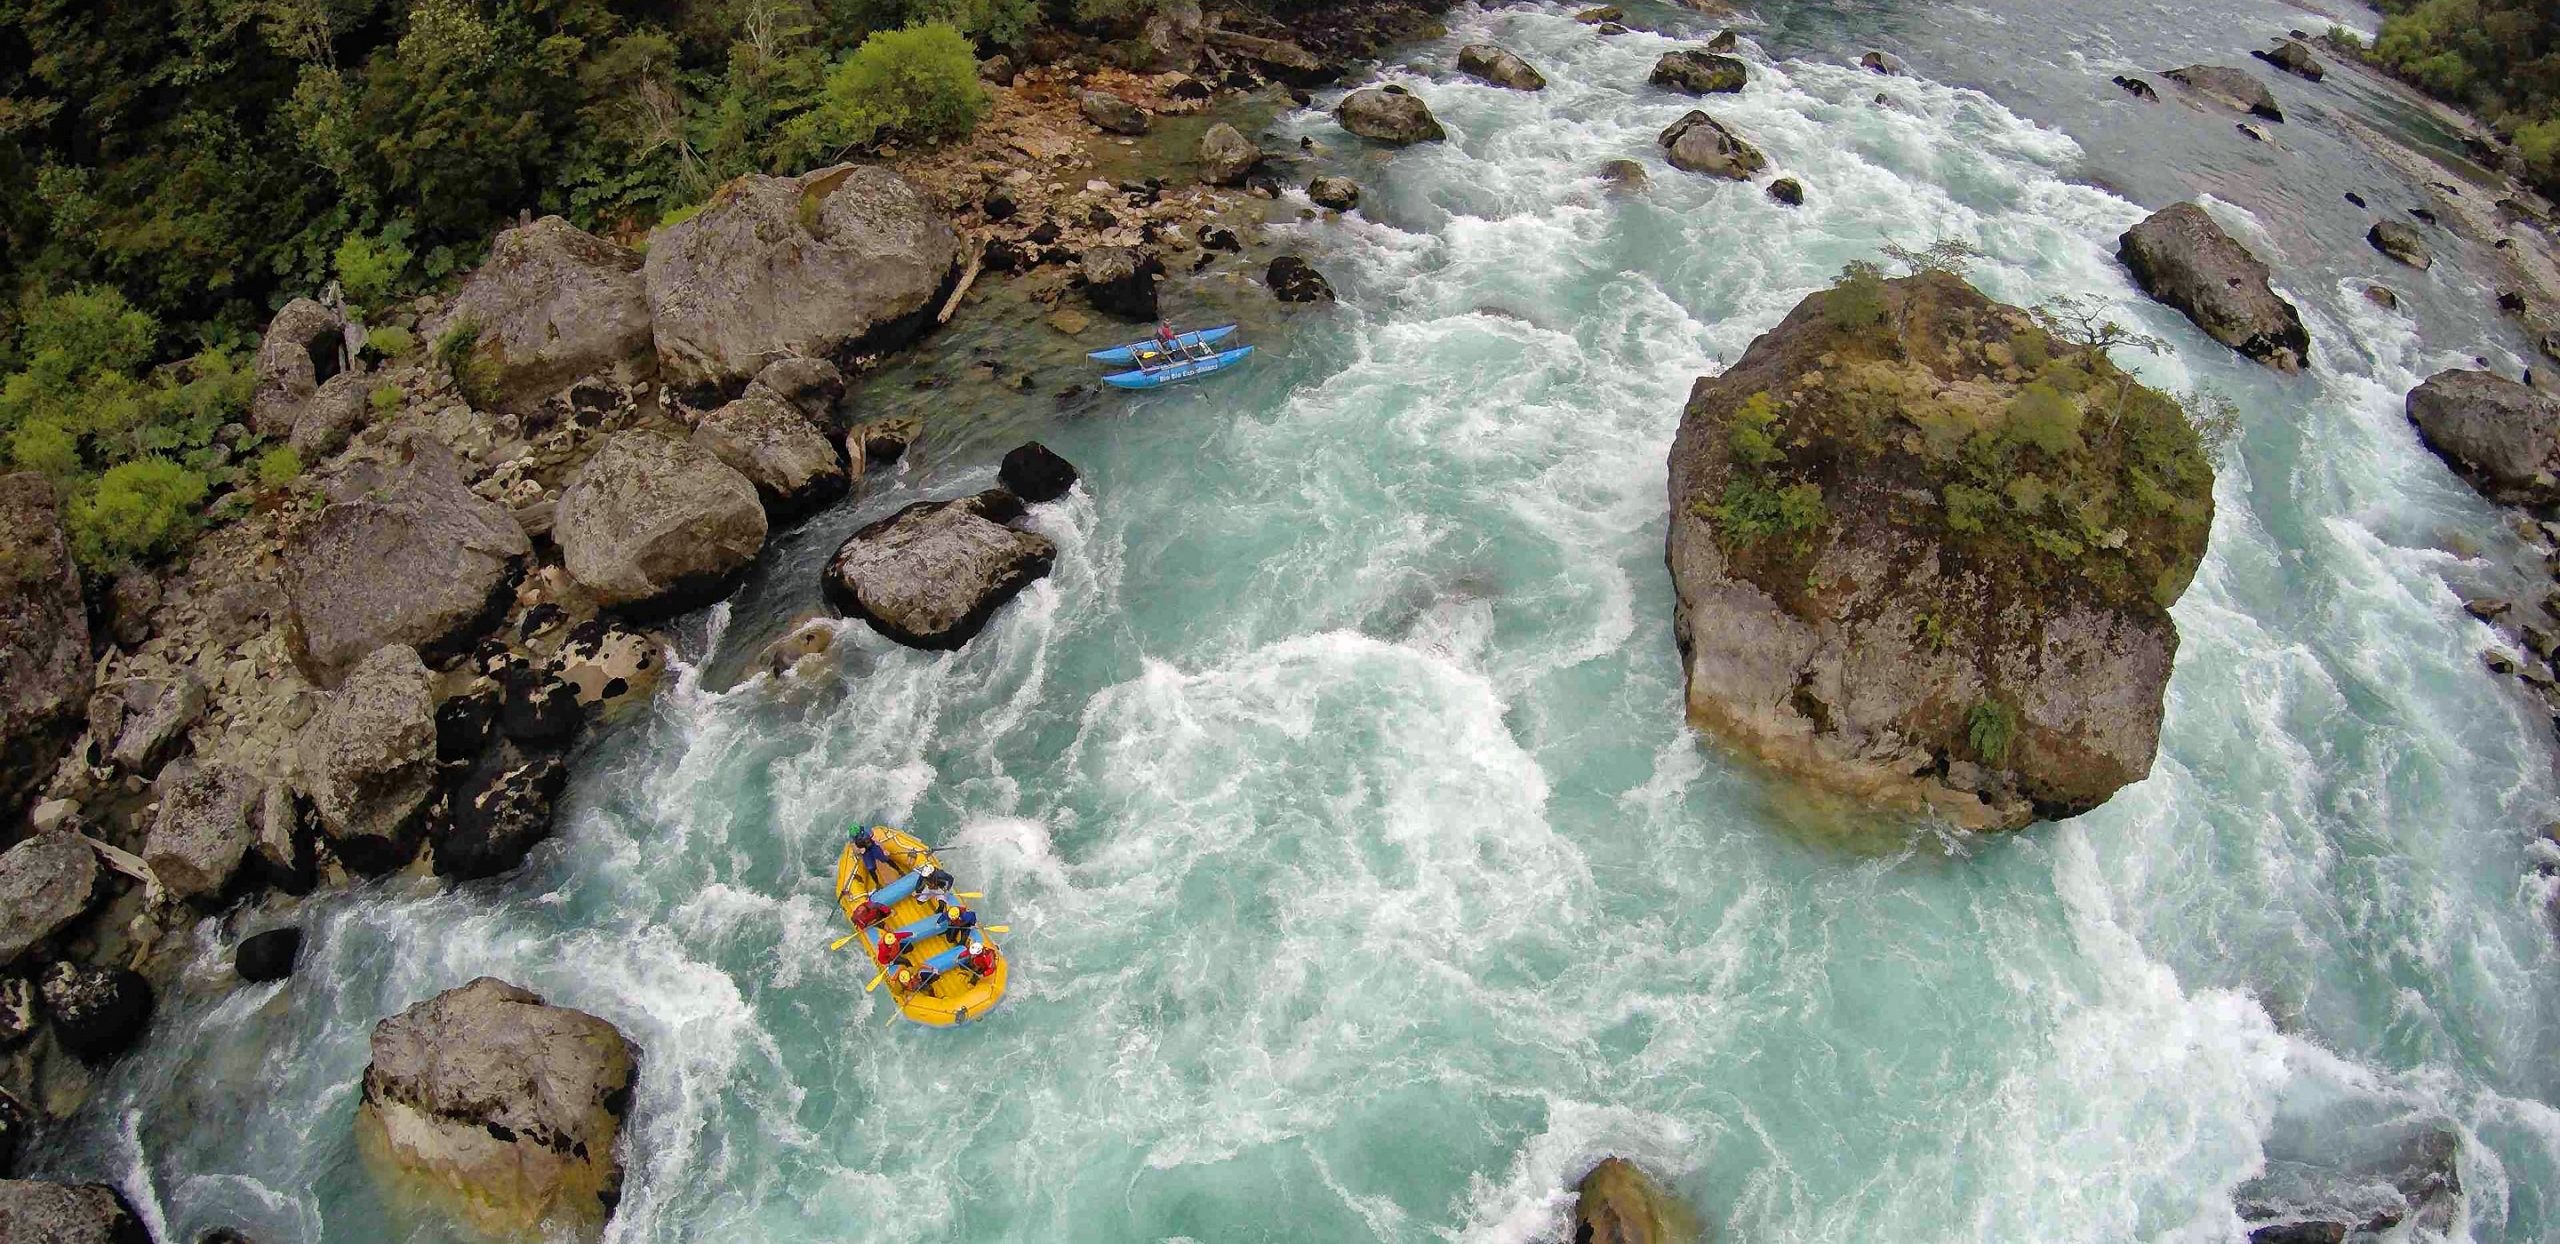 Rafting In Chile - Casa de Piedra